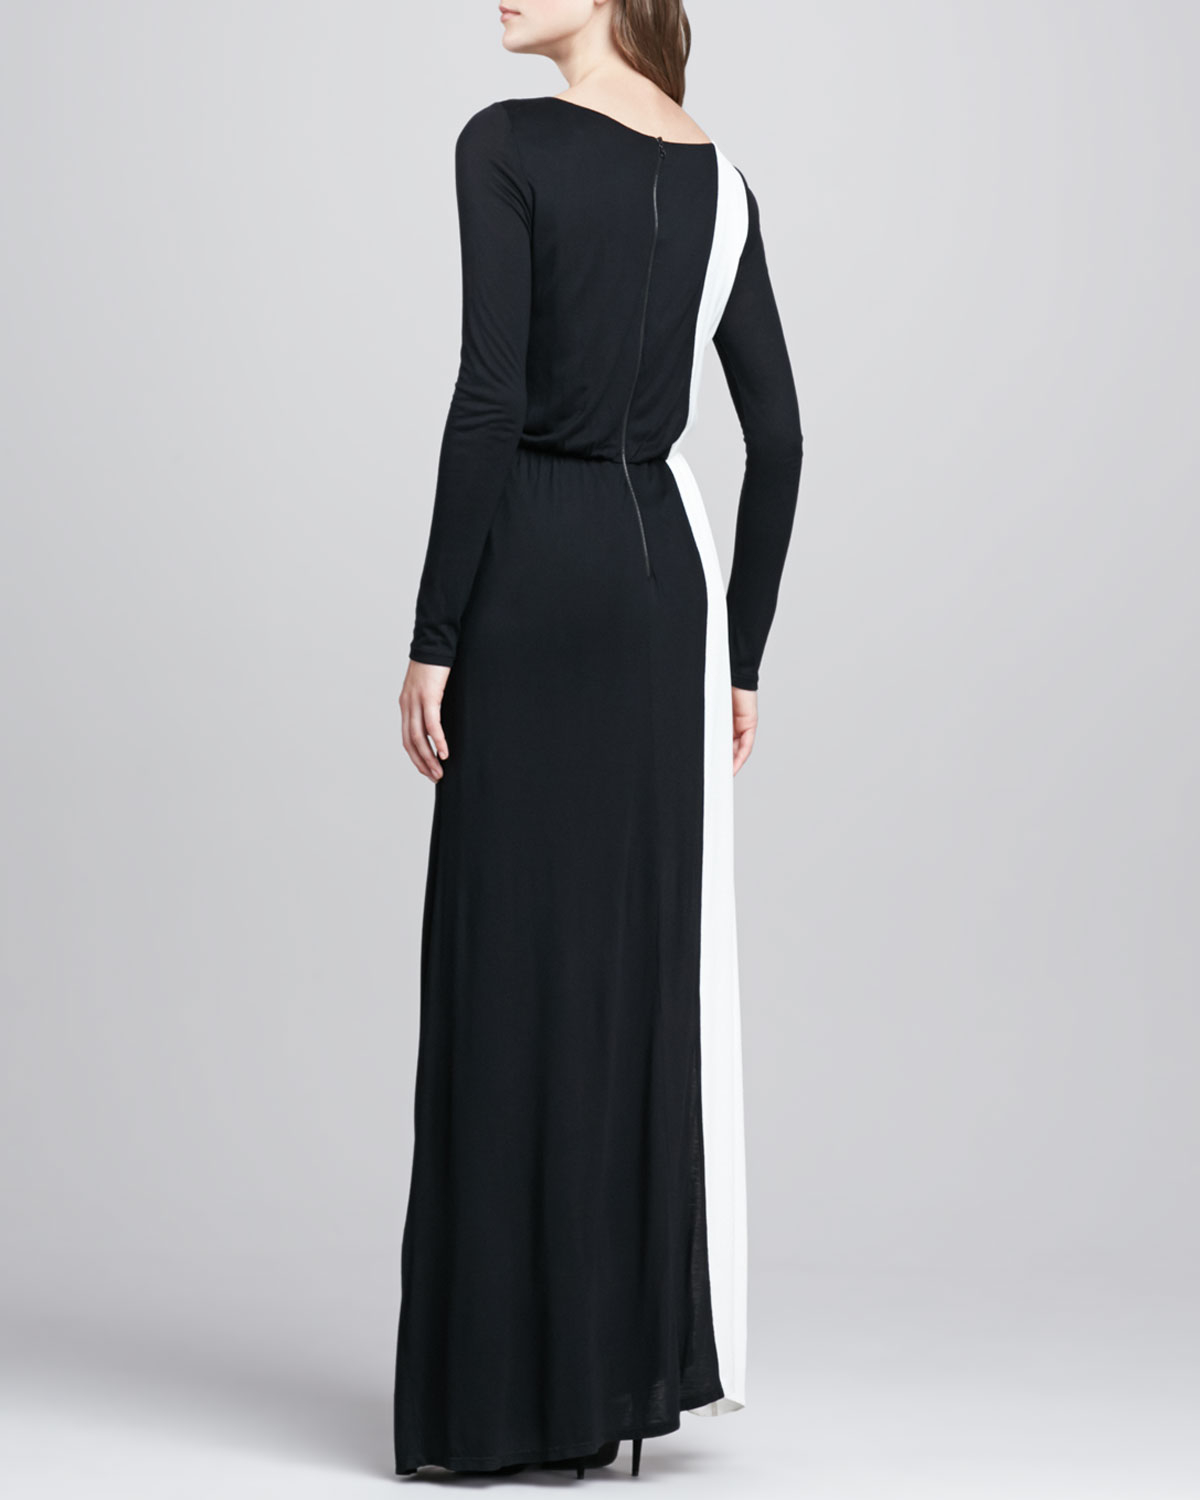 Alice Olivia Long Sleeve Two Tone Maxi Dress In Black